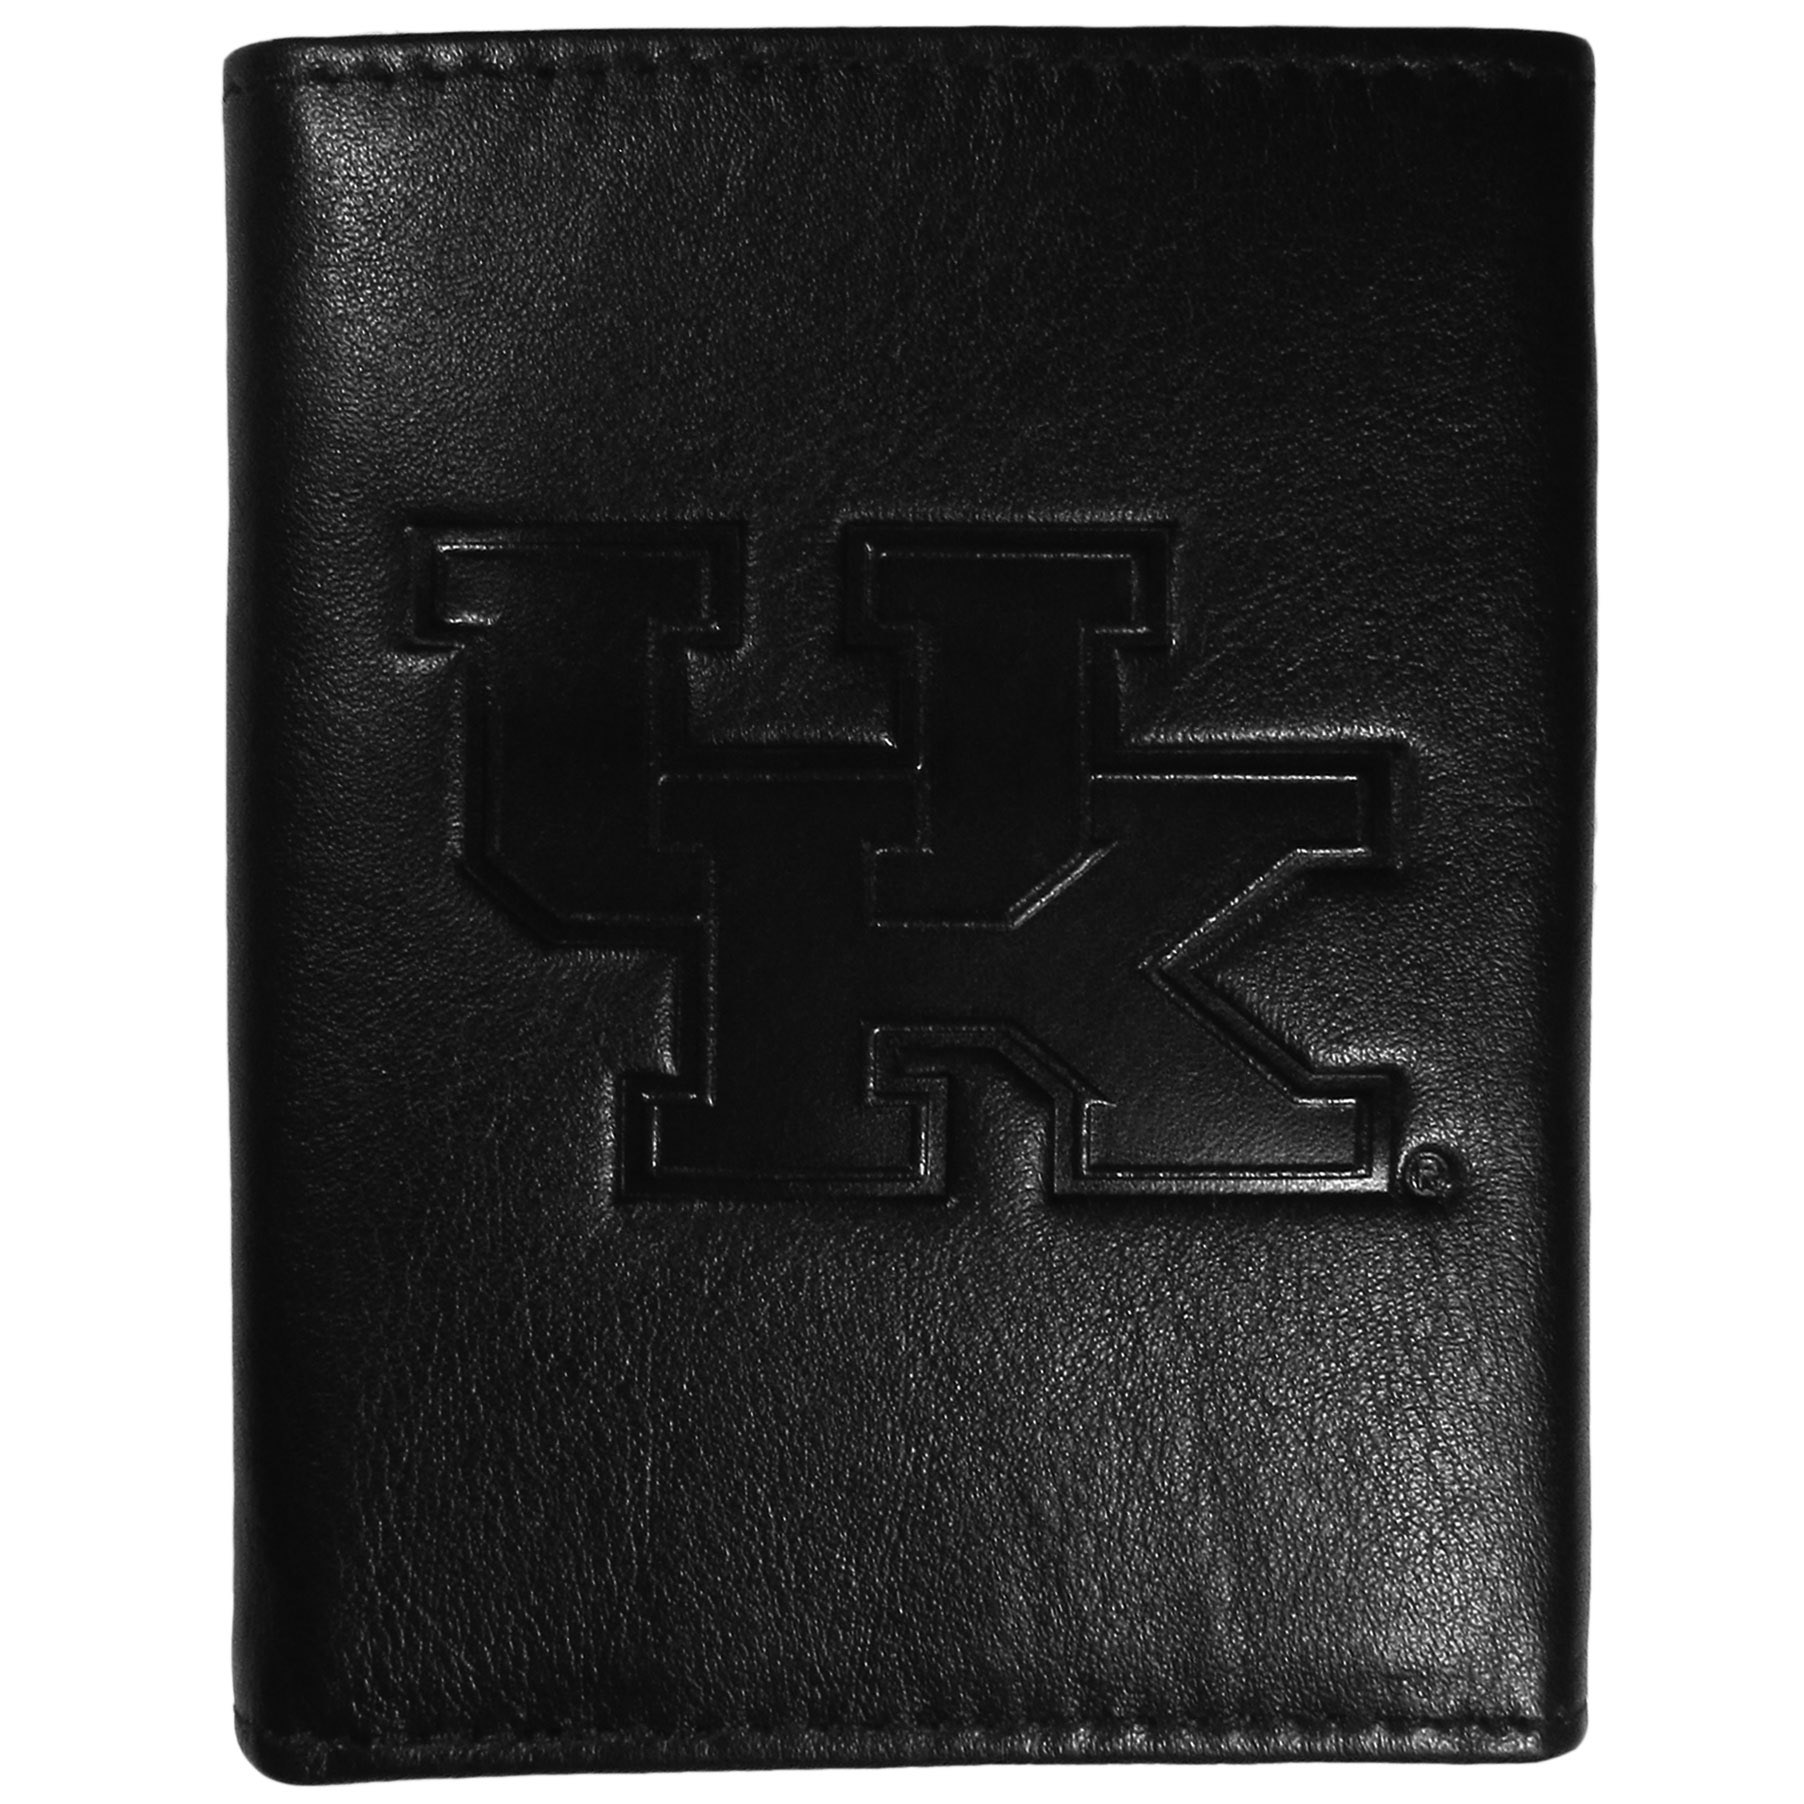 Kentucky Wildcats Embossed Leather Tri-fold Wallet - This stylish leather wallet is made of high quality leather with a supple feel and classic look. The front of the tri-fold style wallet has a deeply embossed Kentucky Wildcats logo. The billfold is packed with features that will allow to keep organized, lots of credit card slots, windowed ID slot, large pockets for bills and a removable sleeve with extra slots for even more storage. This is a must-have men's fashion accessory that would make any fan very proud to own.